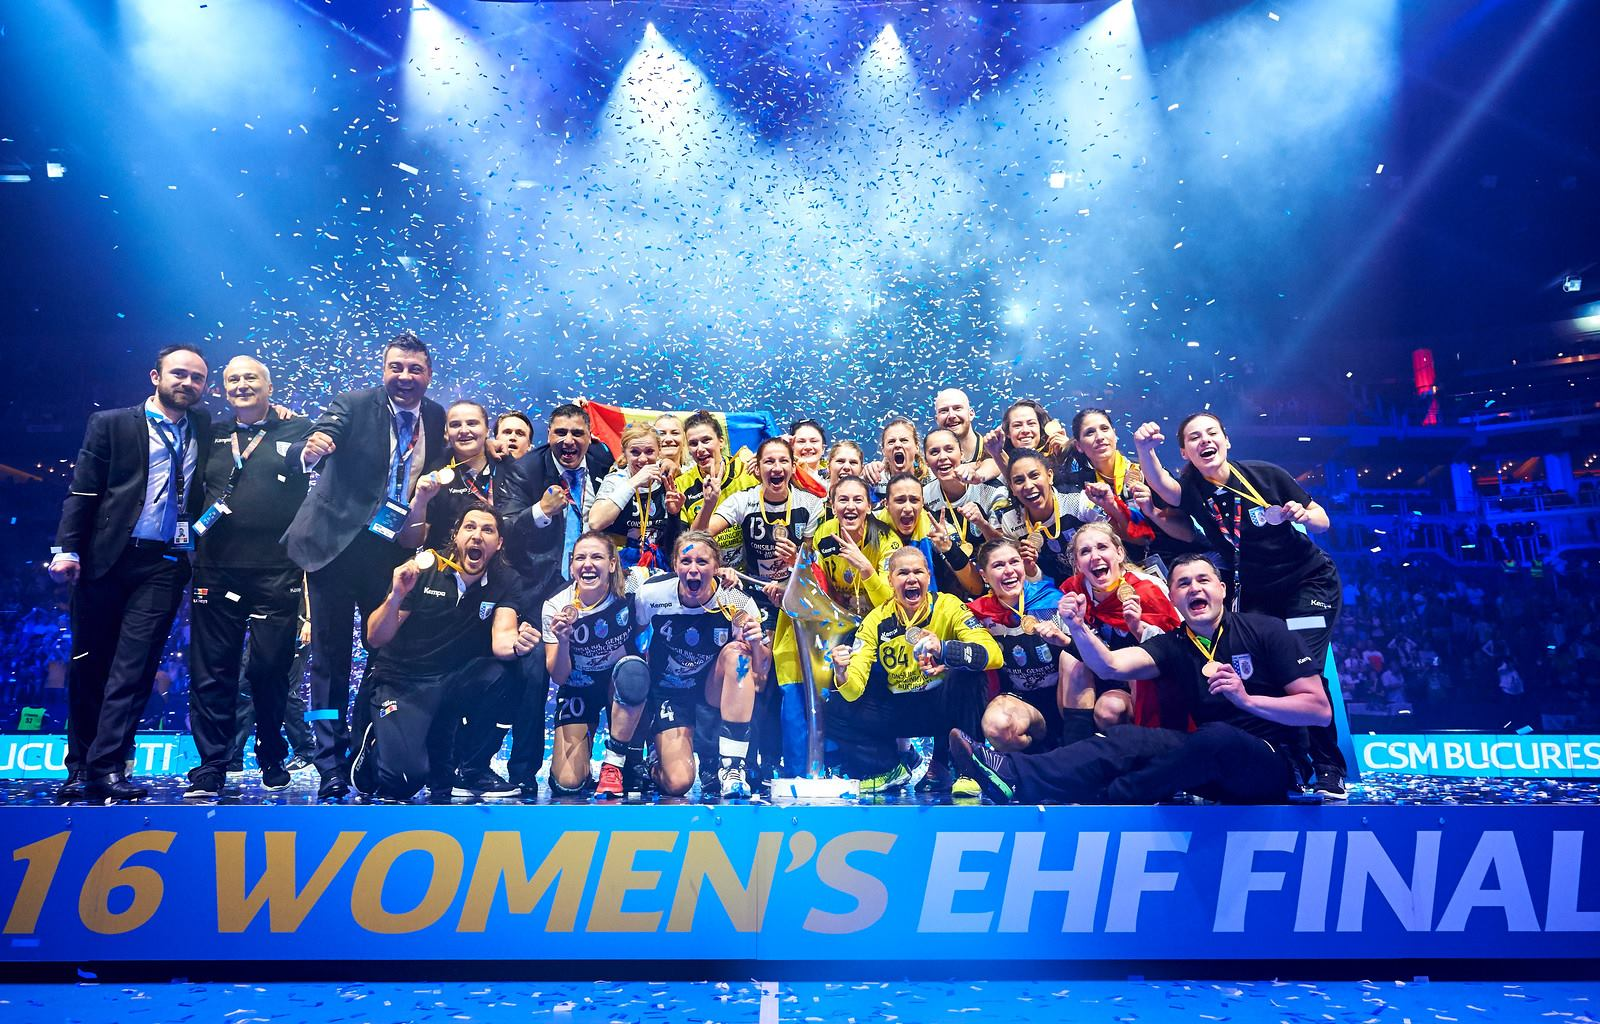 CSM Bucuresti EHF champions league women's